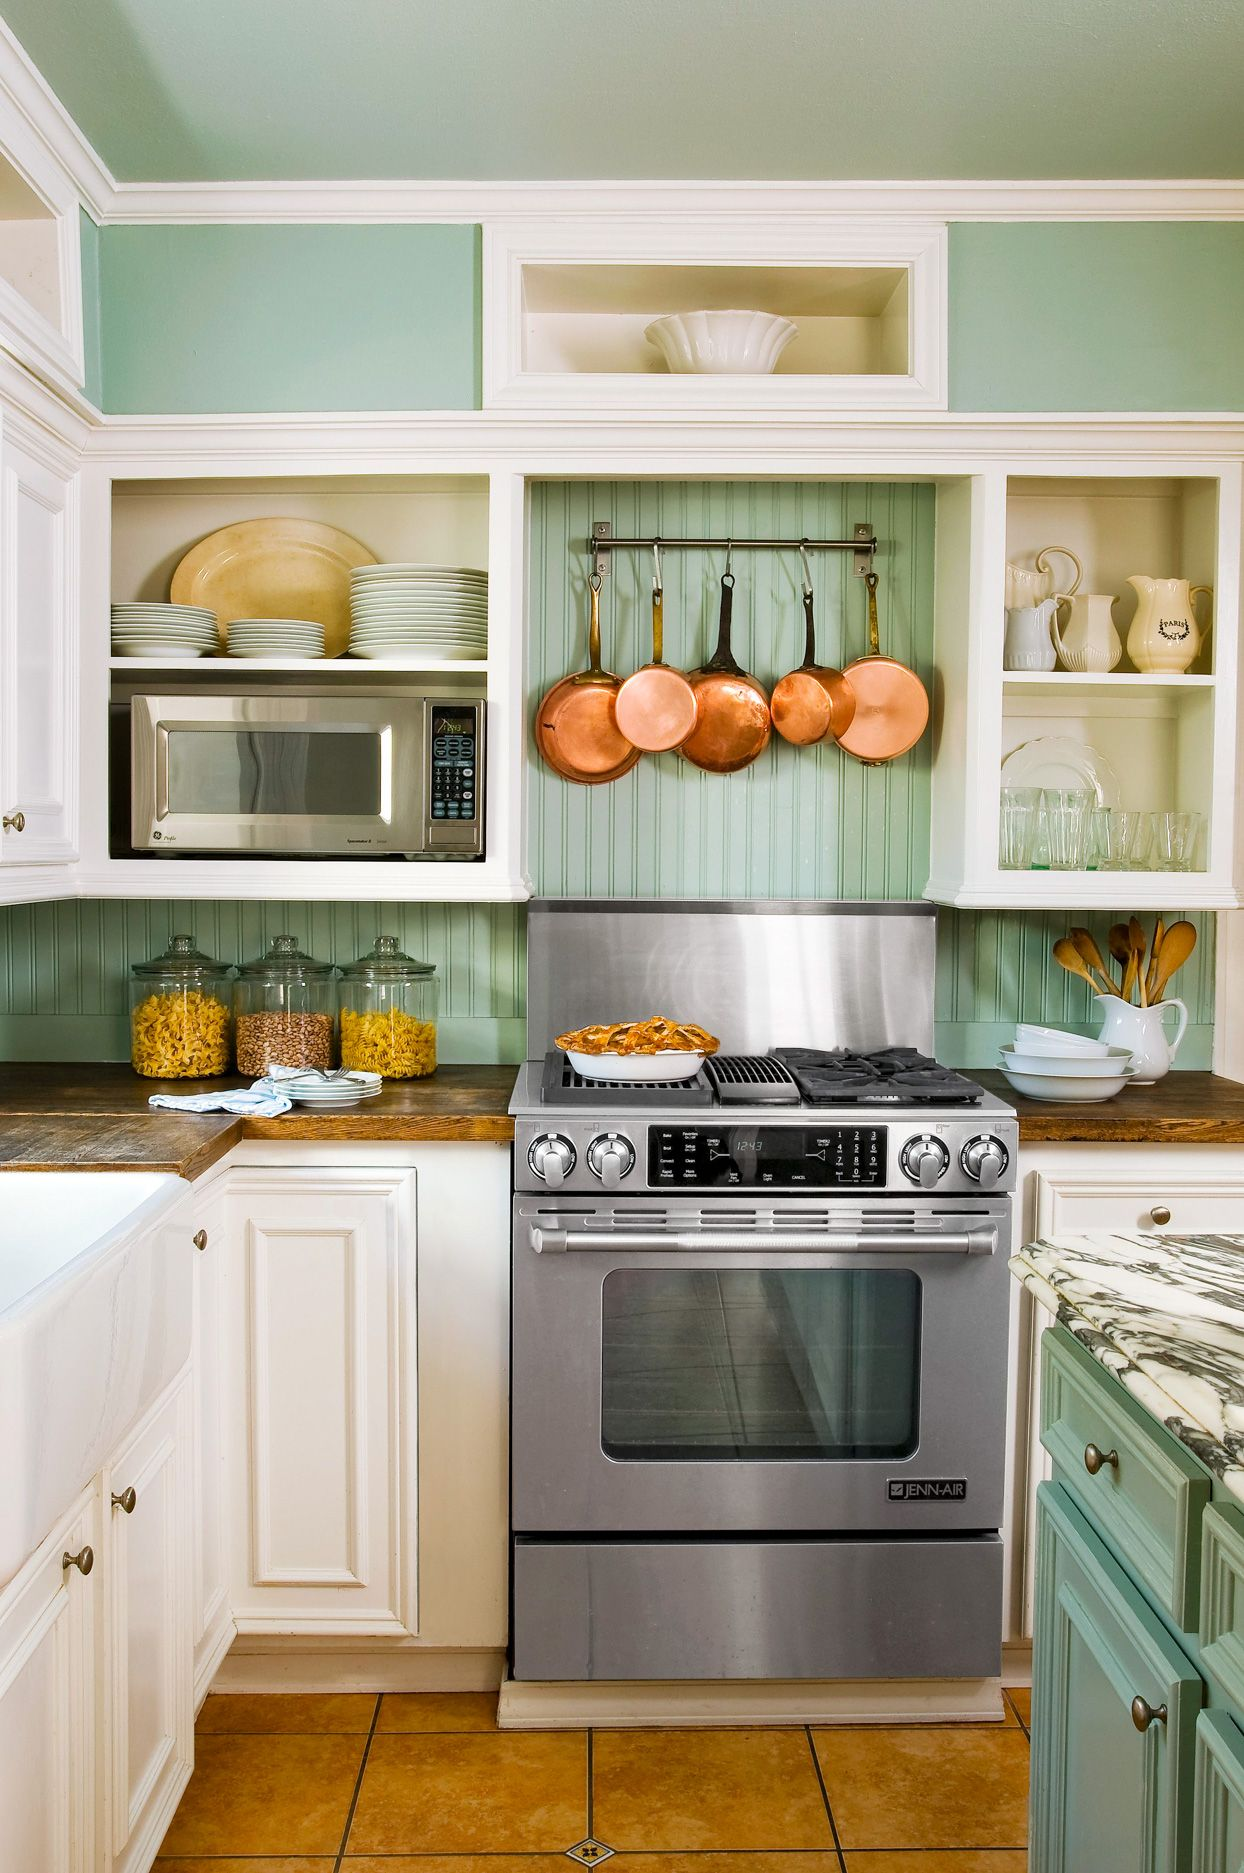 17 Budget-Friendly Backsplash Ideas That Only Look Expensive